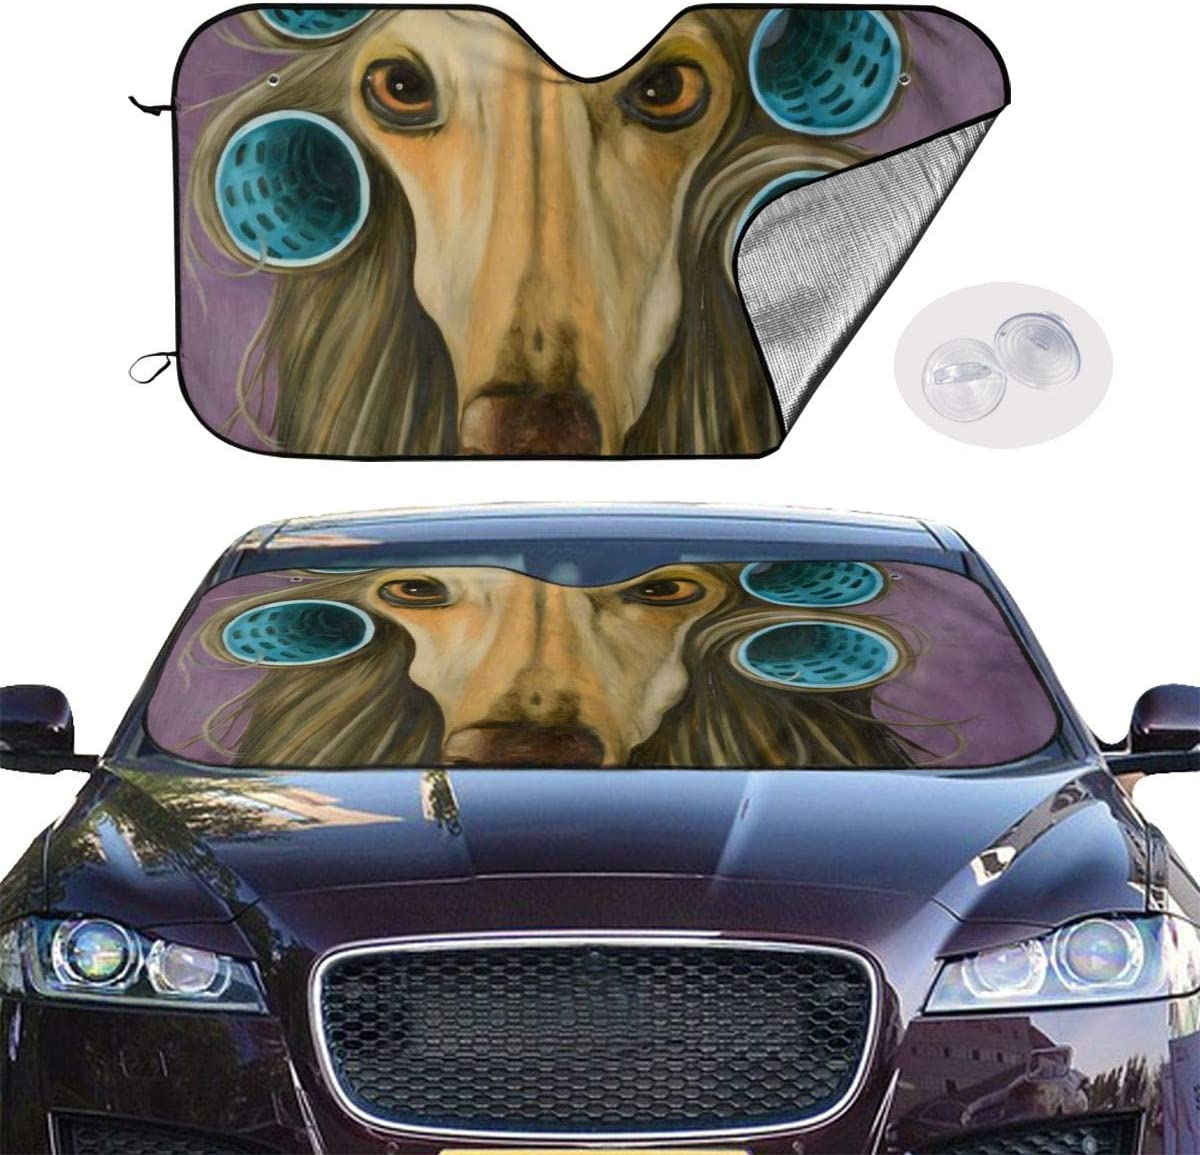 MOLLUDY Car Windshield Sunshade Blocks UV Rays Sun Visor Protector Afghan Hound Dog Hair Style Sunshade To Keep Your Vehicle Cool And Damage Free 70 130cm